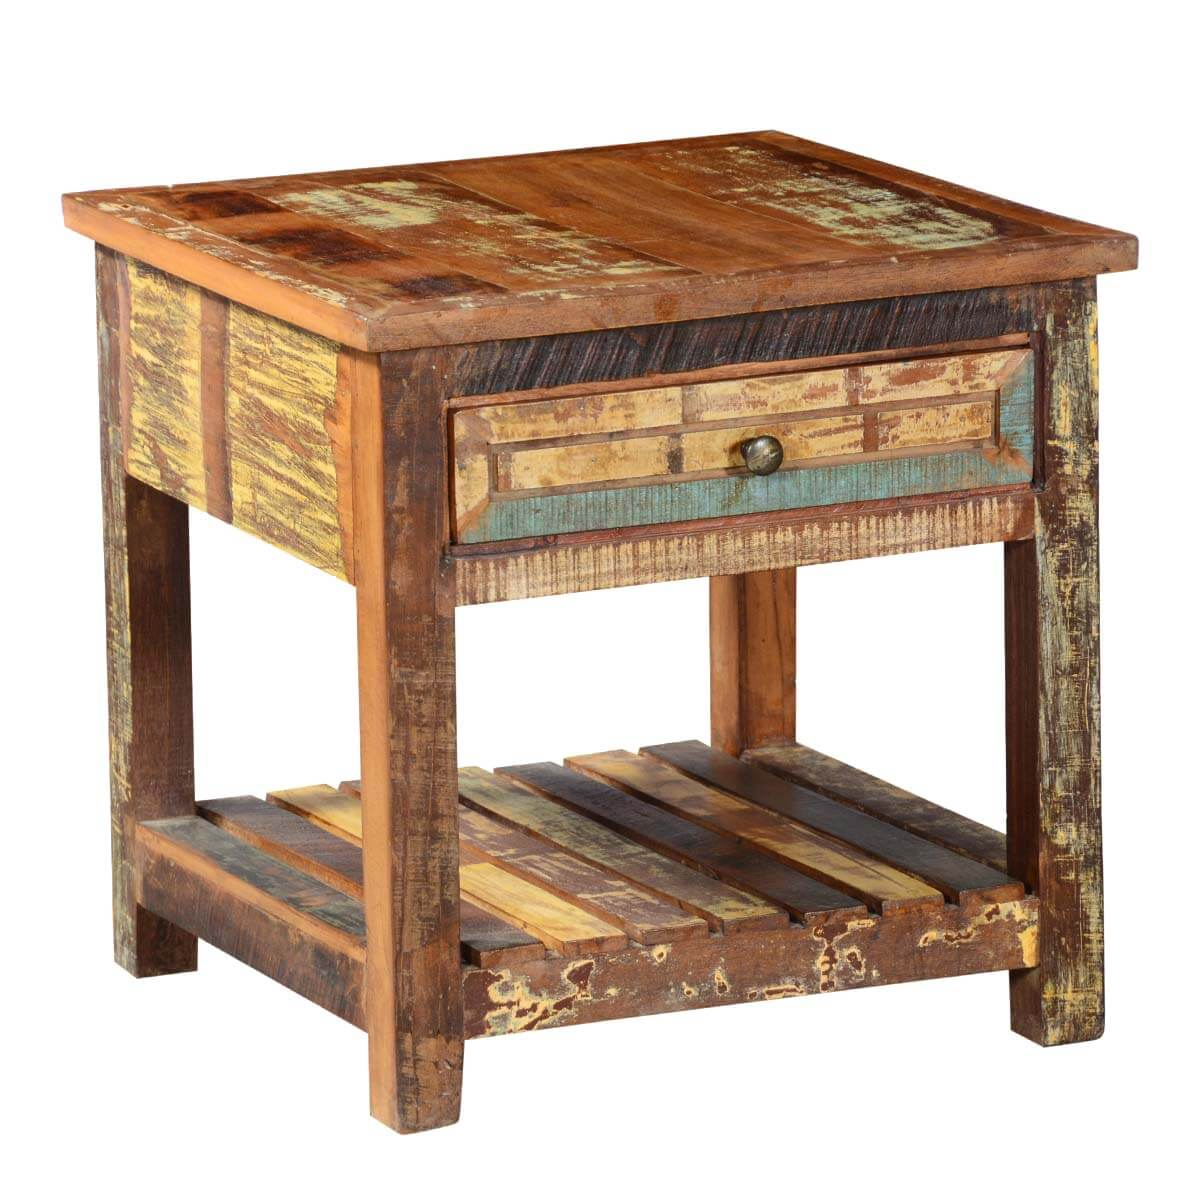 Rustic reclaimed wood tier bedside weathered end table